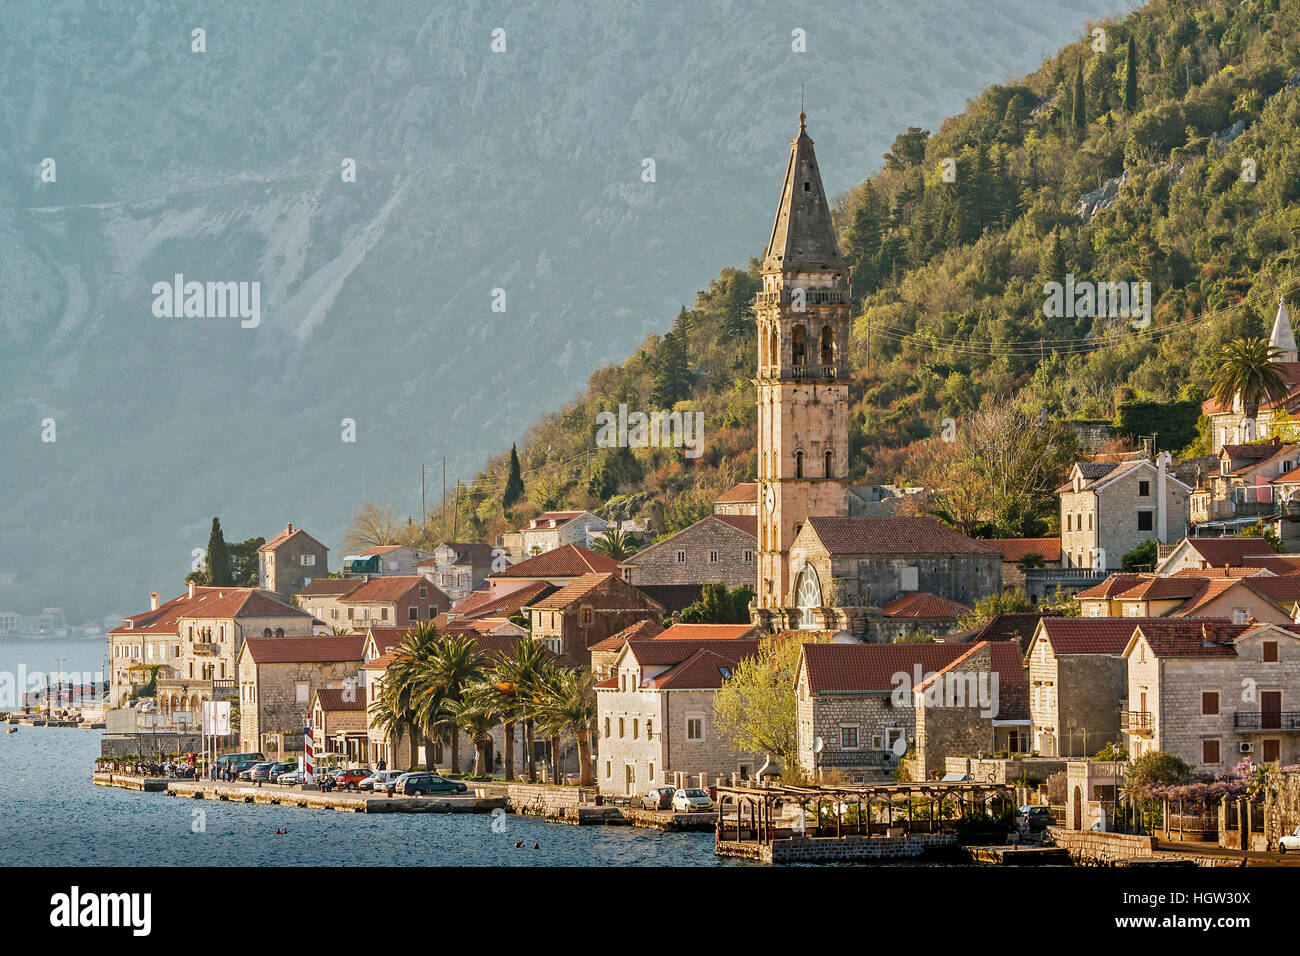 The Small Village Of Dobrota Montenegro - Stock Image